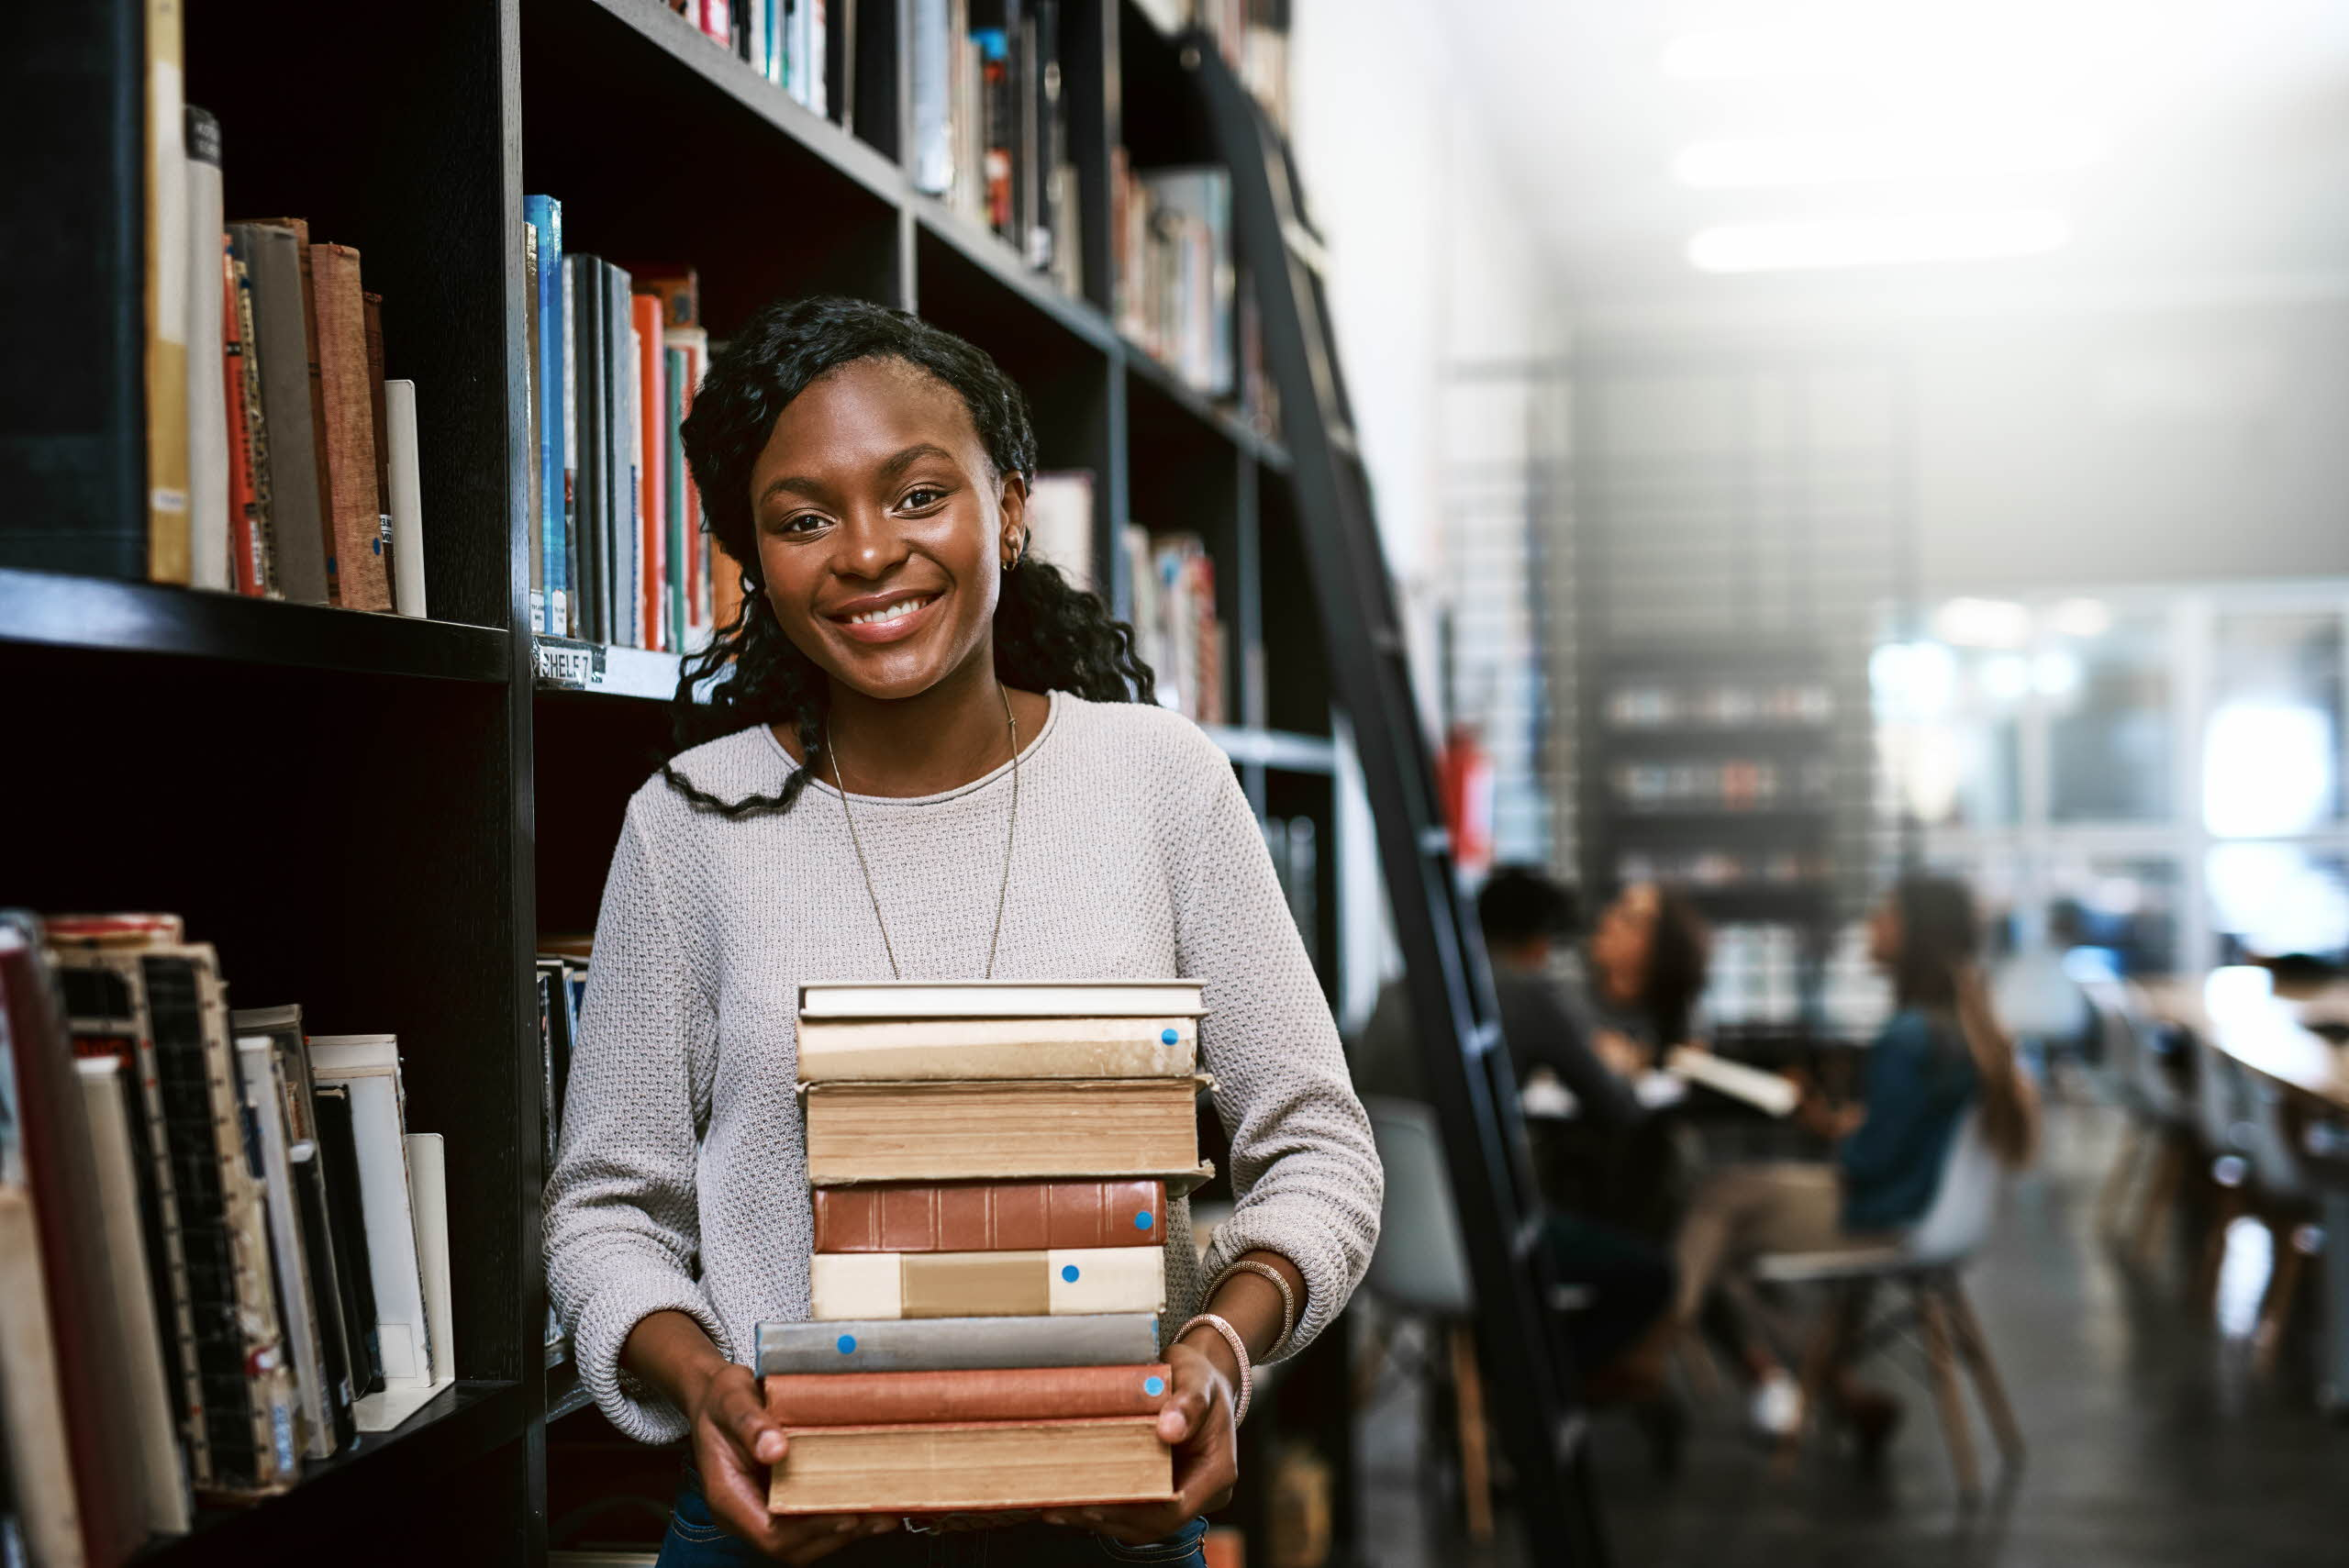 Student at a library